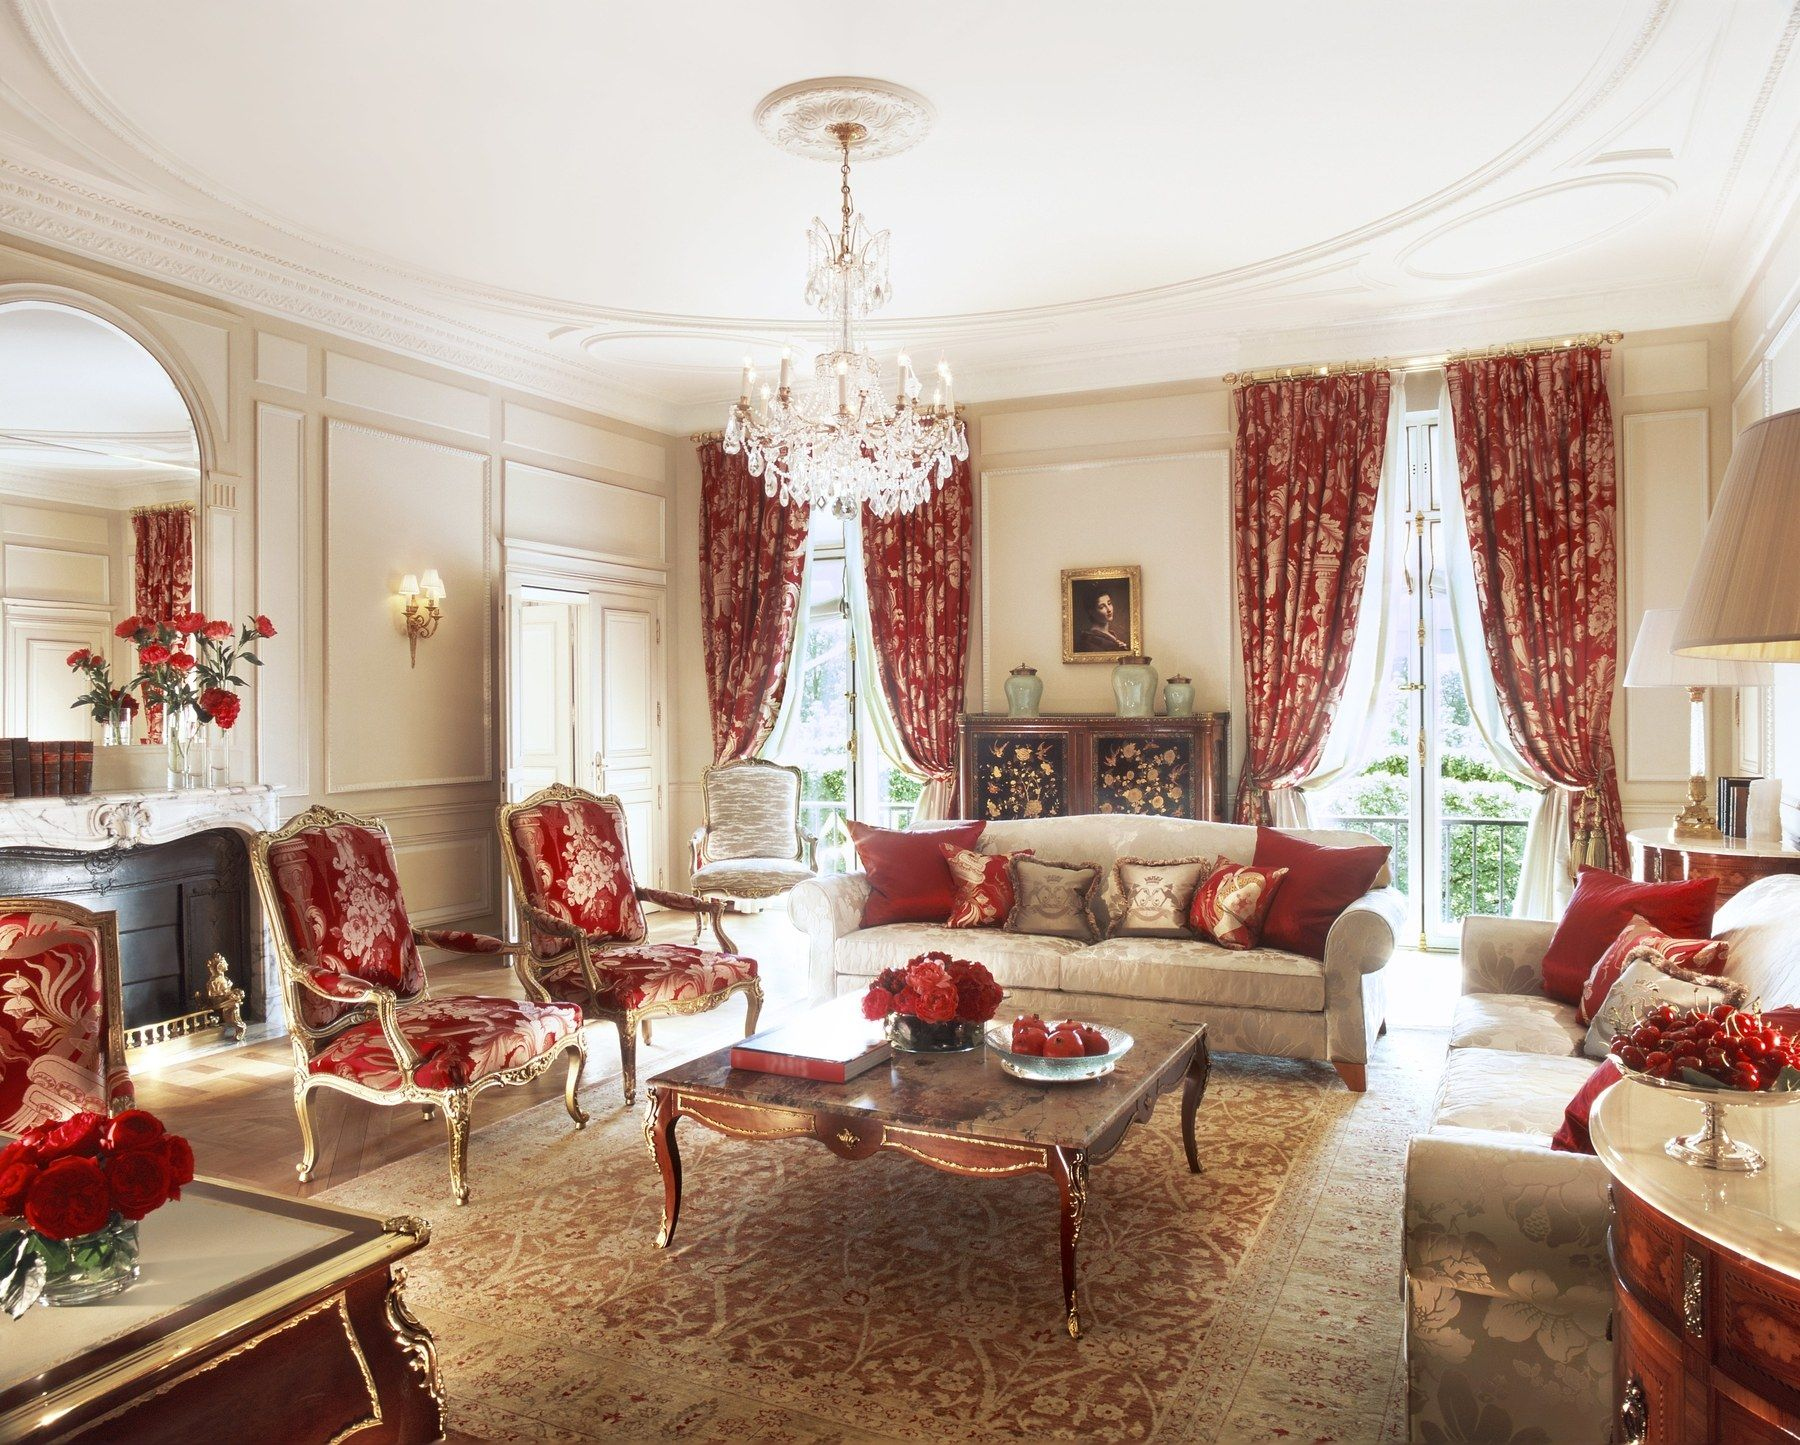 How 24 French Hotels Earned A Rating Even More Luxurious Than Five Stars Pretty Living Room Luxury Hotel Room European Home Decor Red luxury room pictures